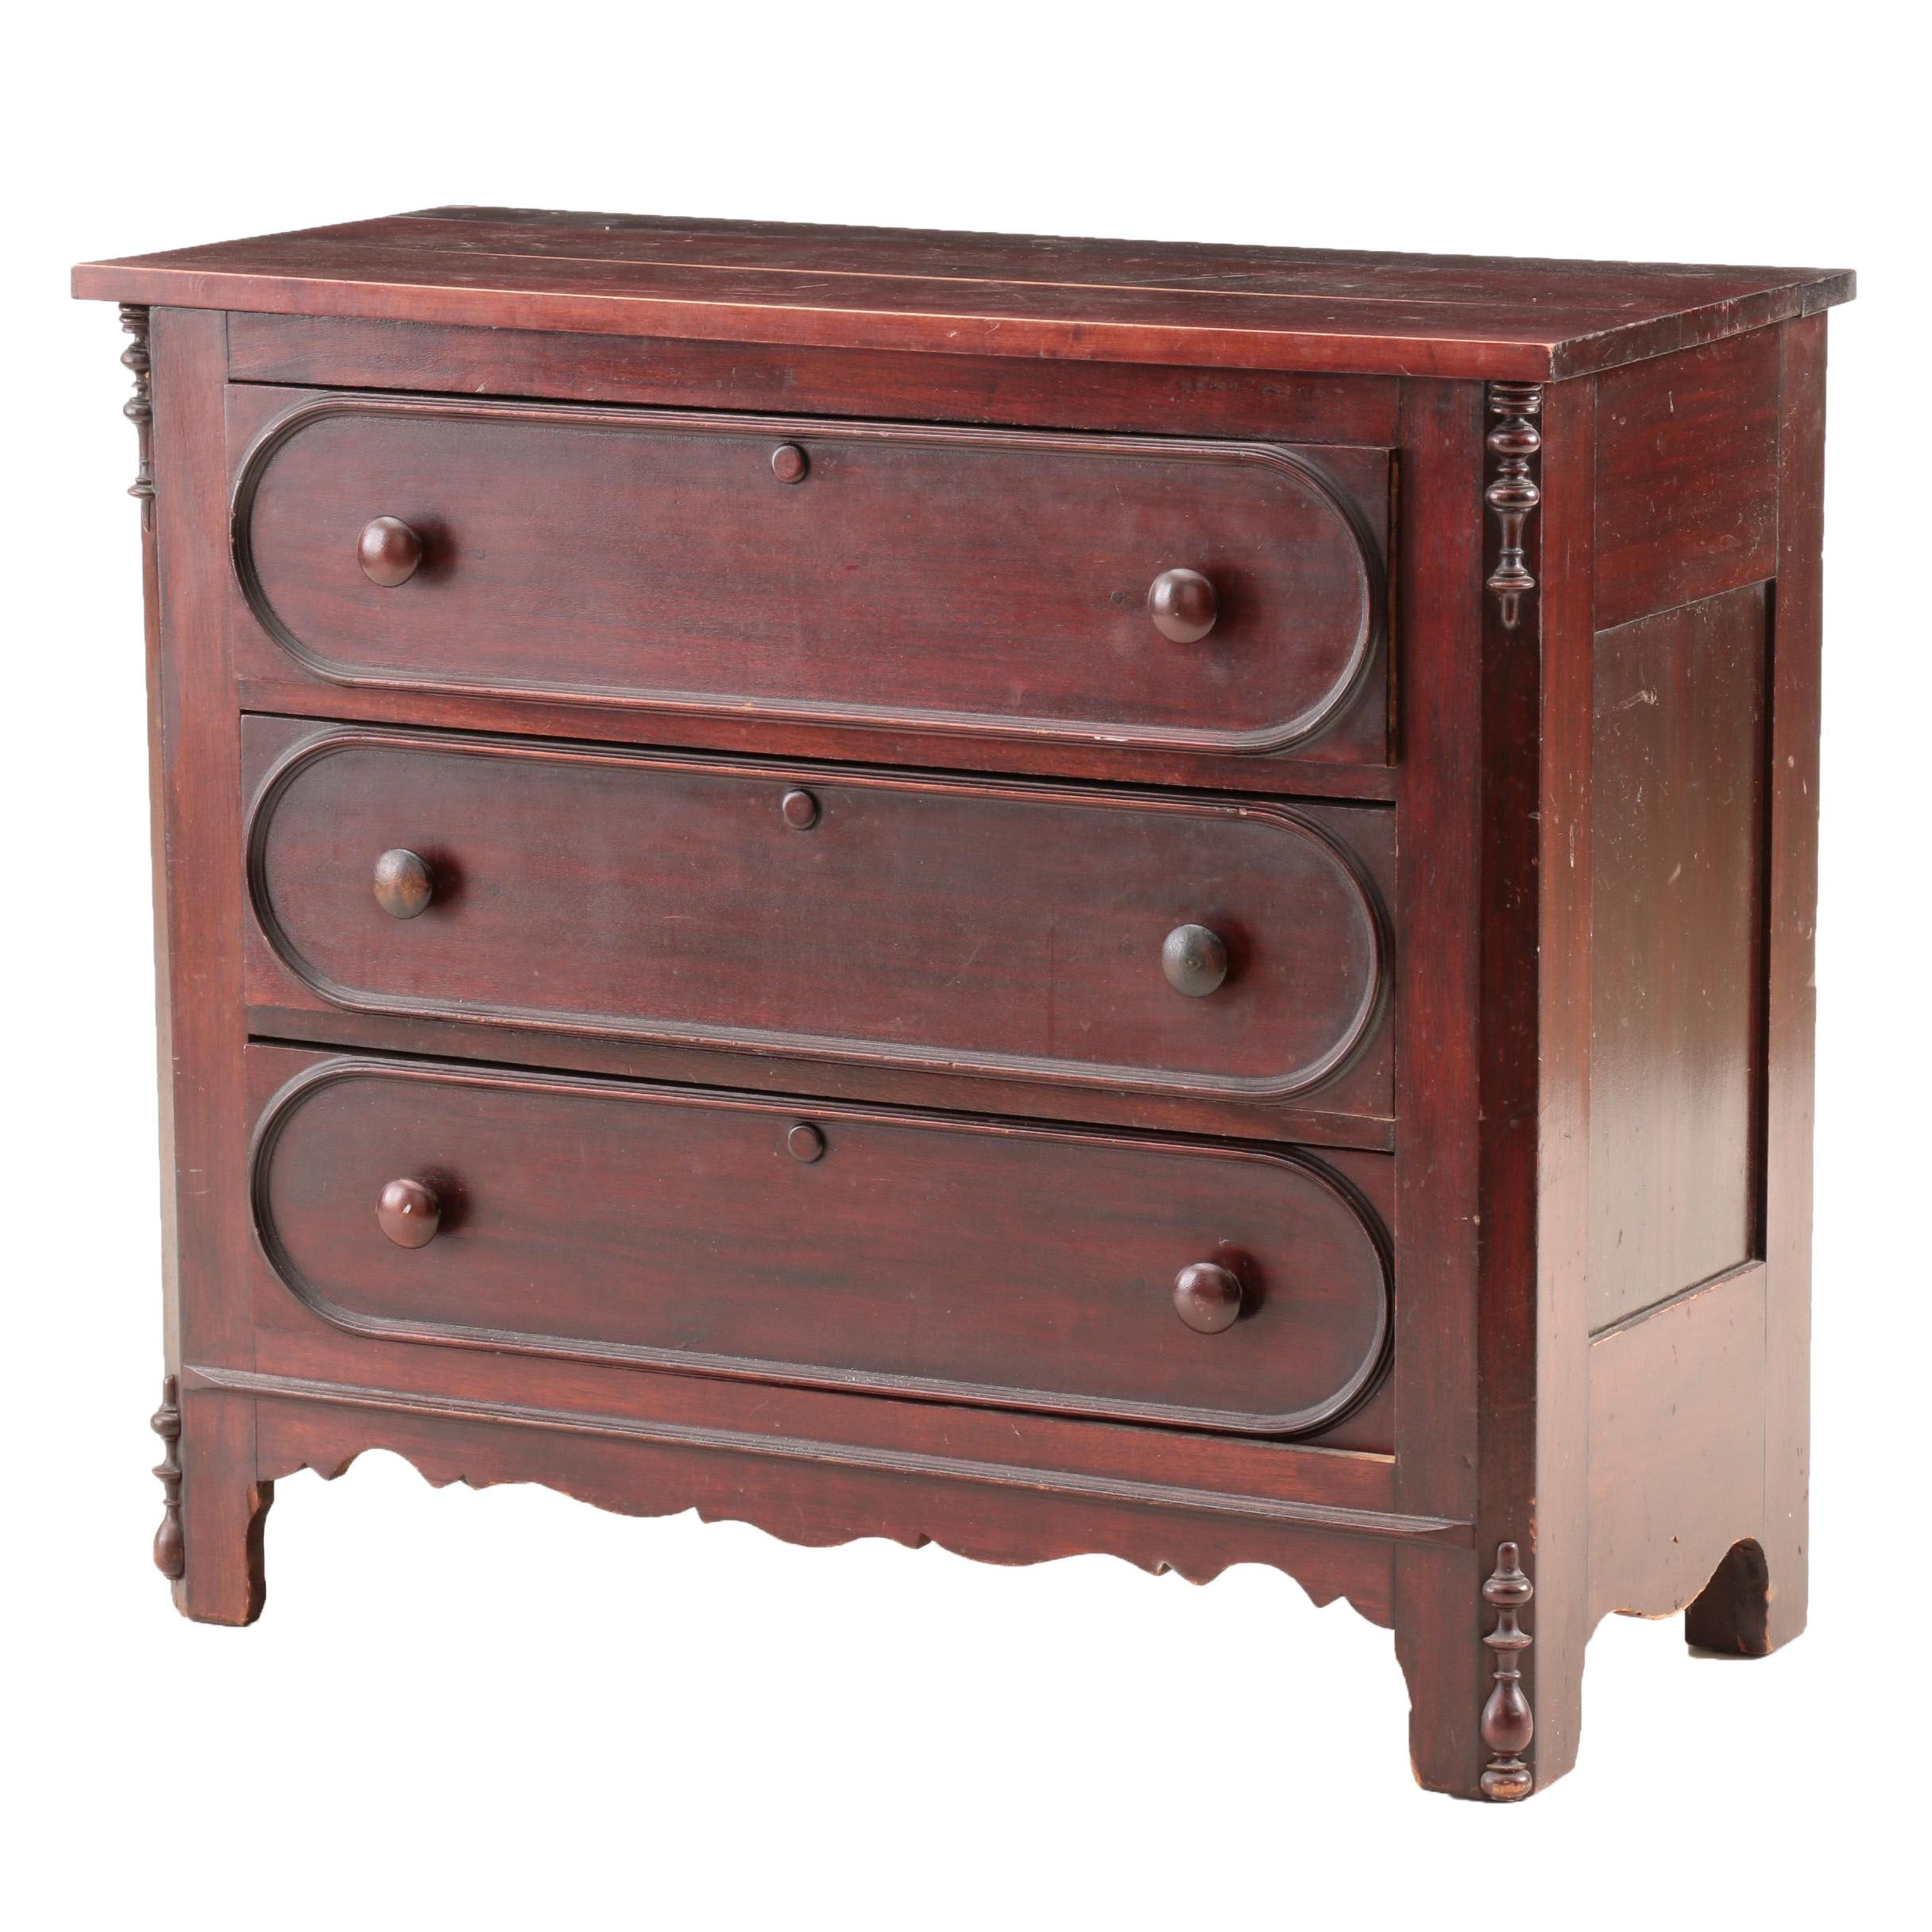 Victorian Mahogany Chest of Drawers, Late 19th Century